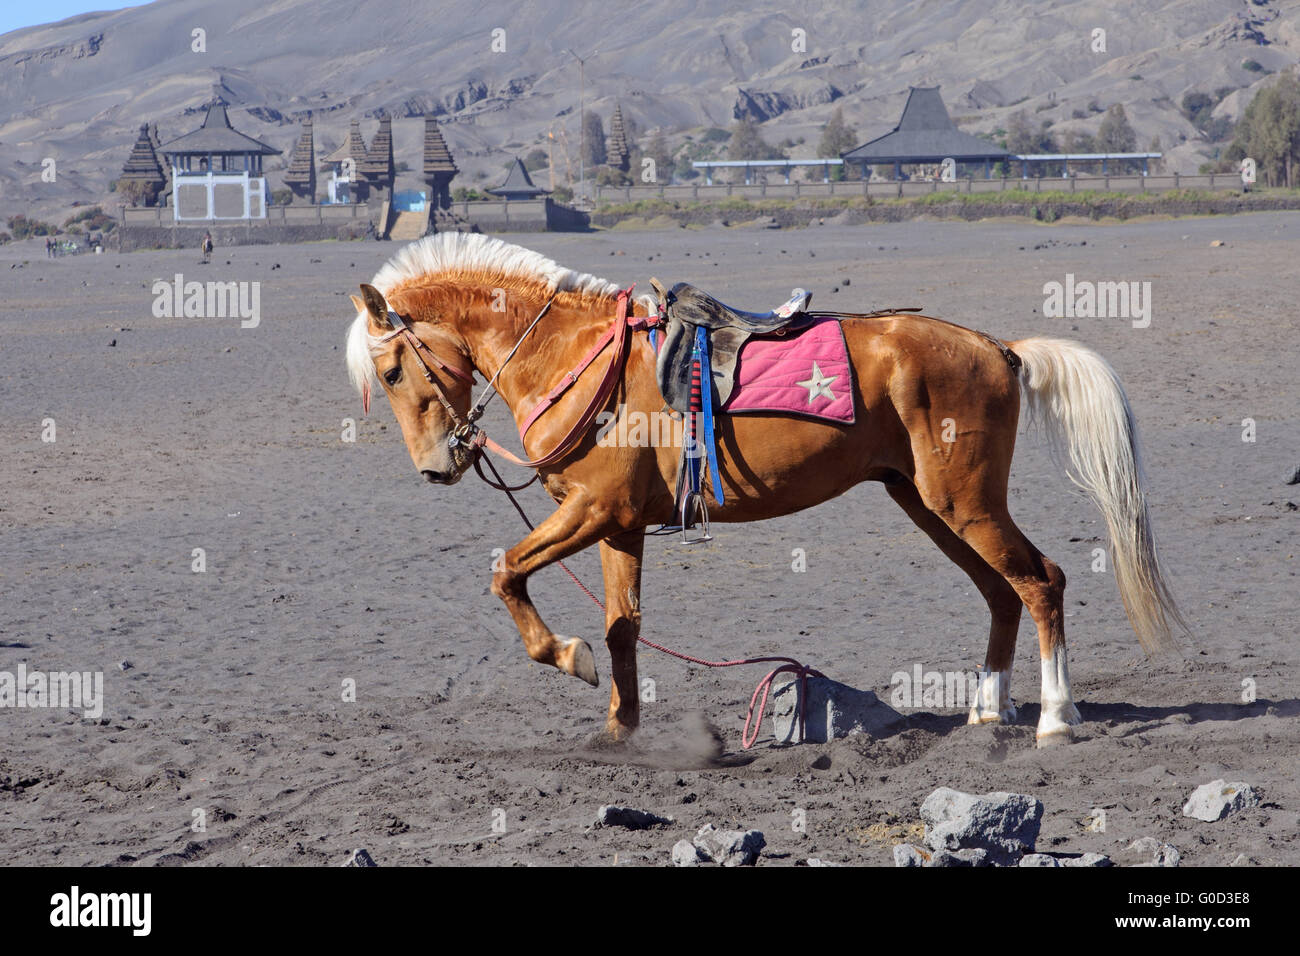 Horse at the foothills of Bromo volcano - Stock Image